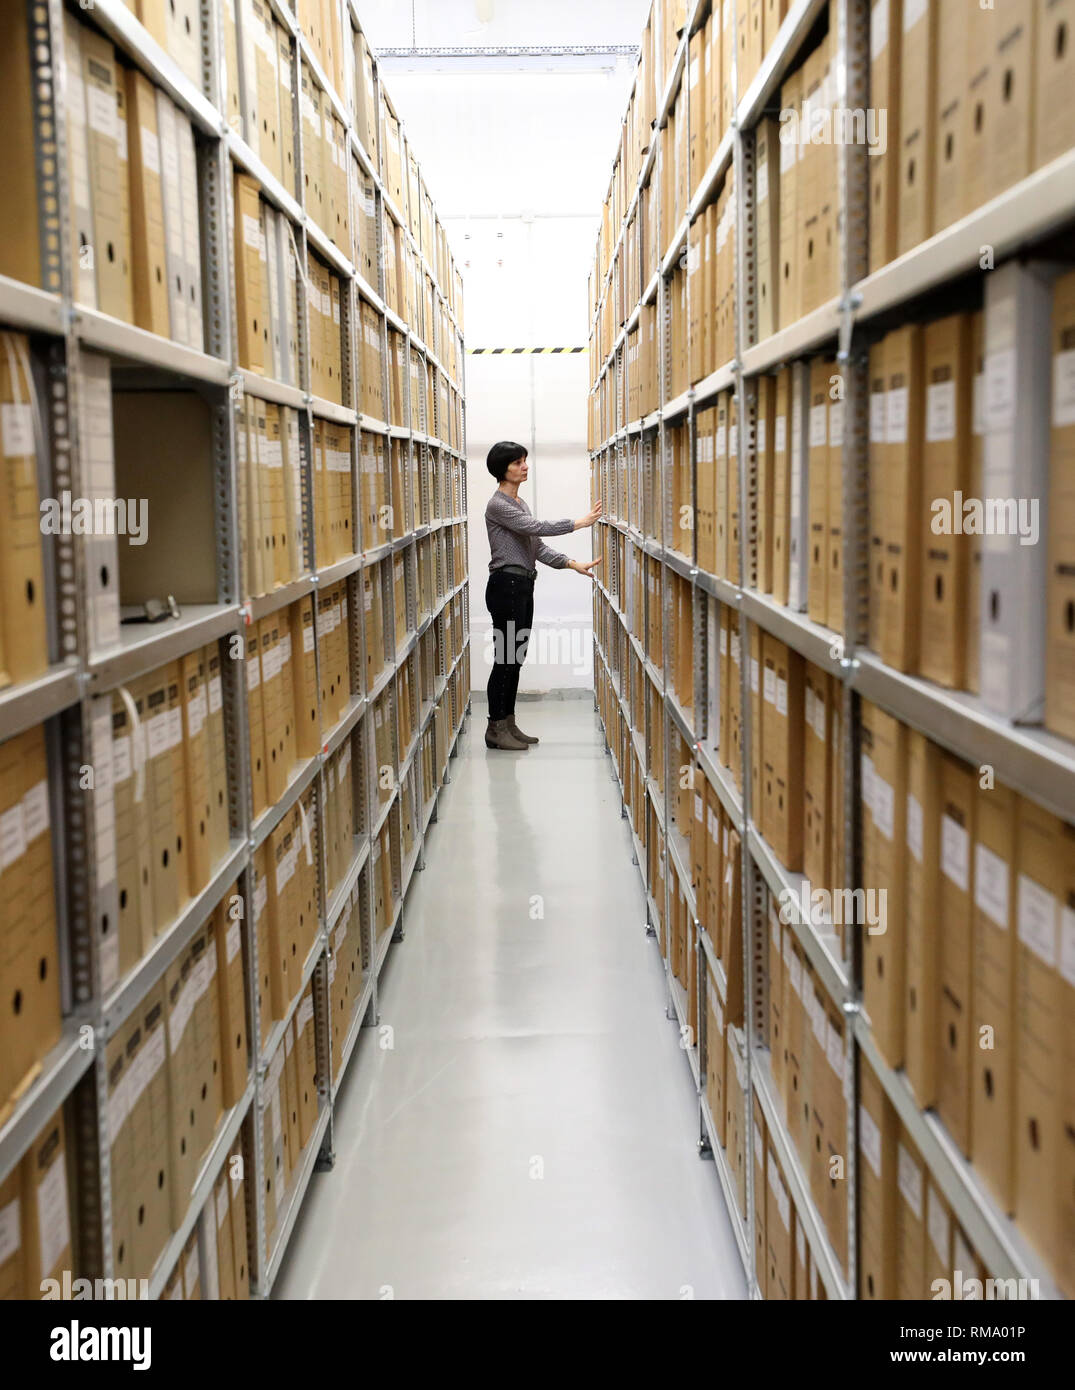 """Neubrandenburg, Germany. 05th Feb, 2019. Heike Thieme, head of the archive in the Neubrandenburg branch of the authority of the Federal Commissioner for Stasi Files (BStU), is on her way through the archive. In a monthly series of events, the Neubrandenburg branch office of the BStU provides information on """"Rapport-Berichte"""" from the period of upheaval. Before each reading there is a guided tour through the archive. Credit: Bernd Wüstneck/dpa-Zentralbild/ZB/dpa/Alamy Live News Stock Photo"""